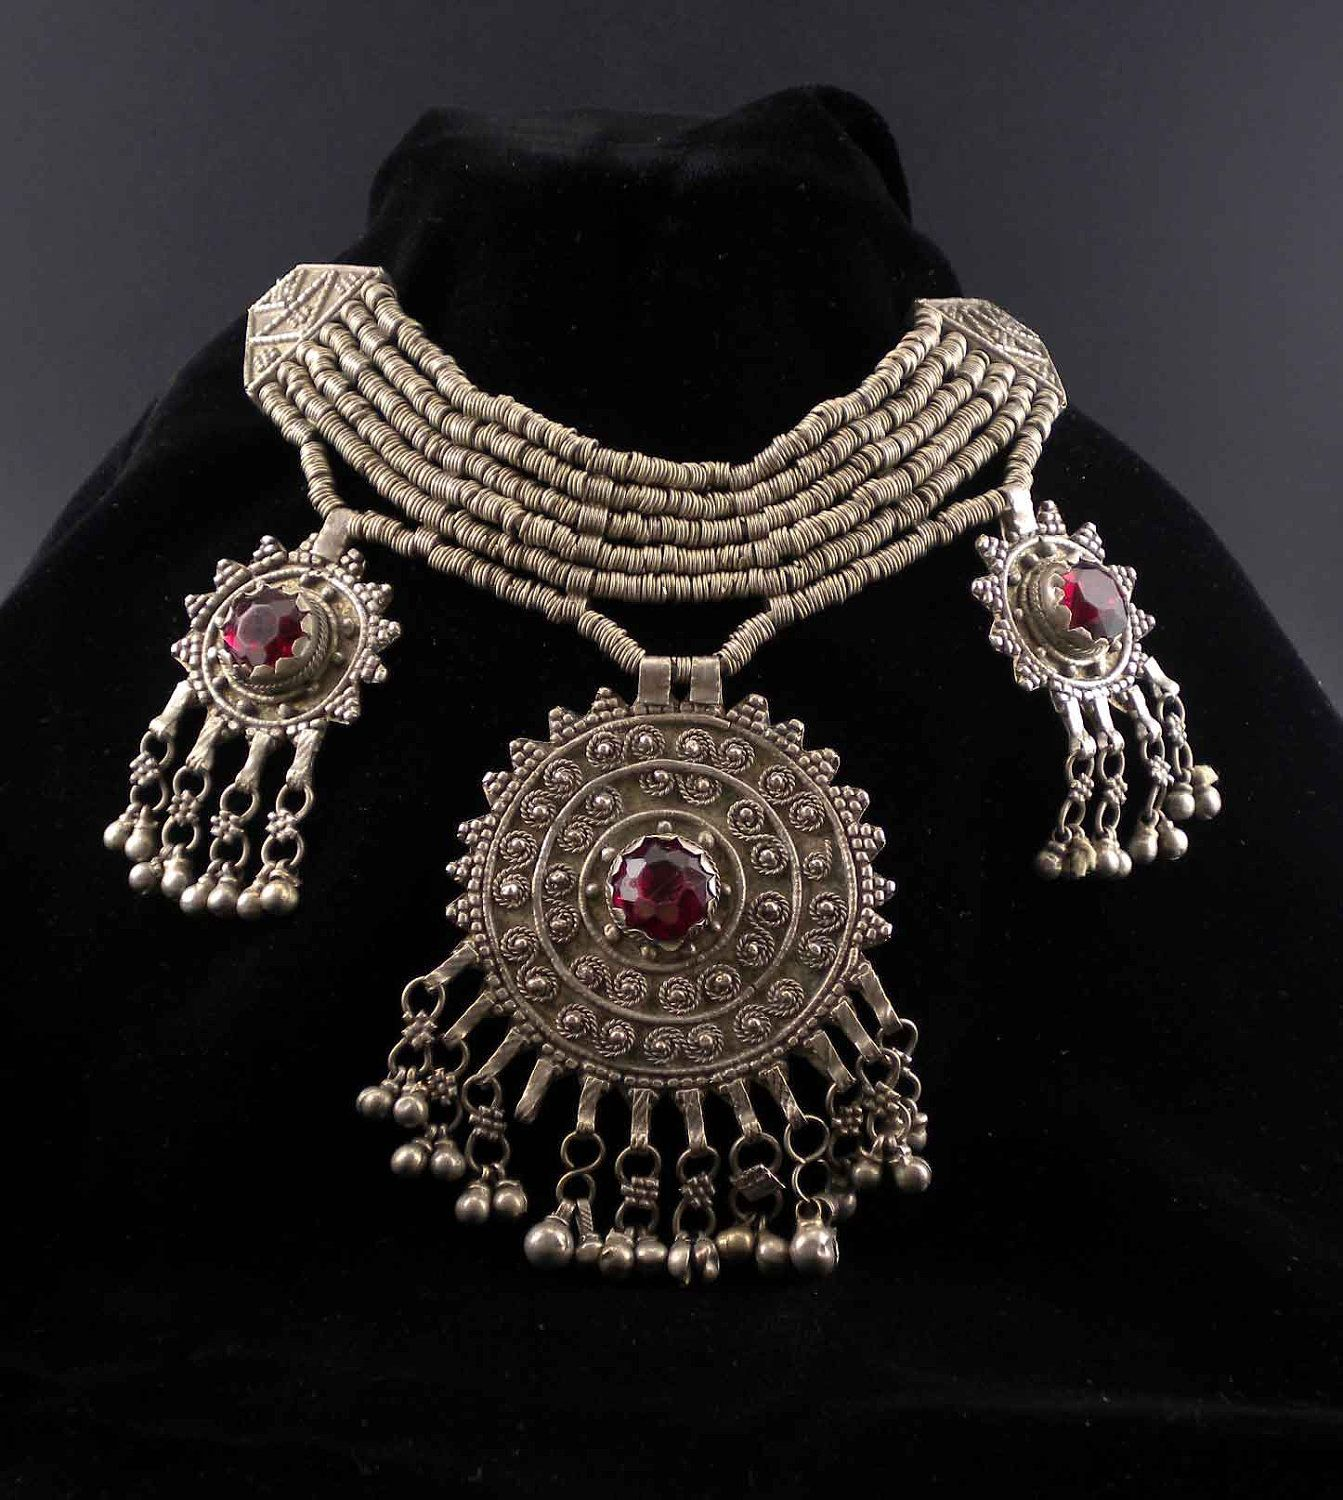 Syria | Vintage Bedouin necklace | Silver (usually low content) with red glass stones